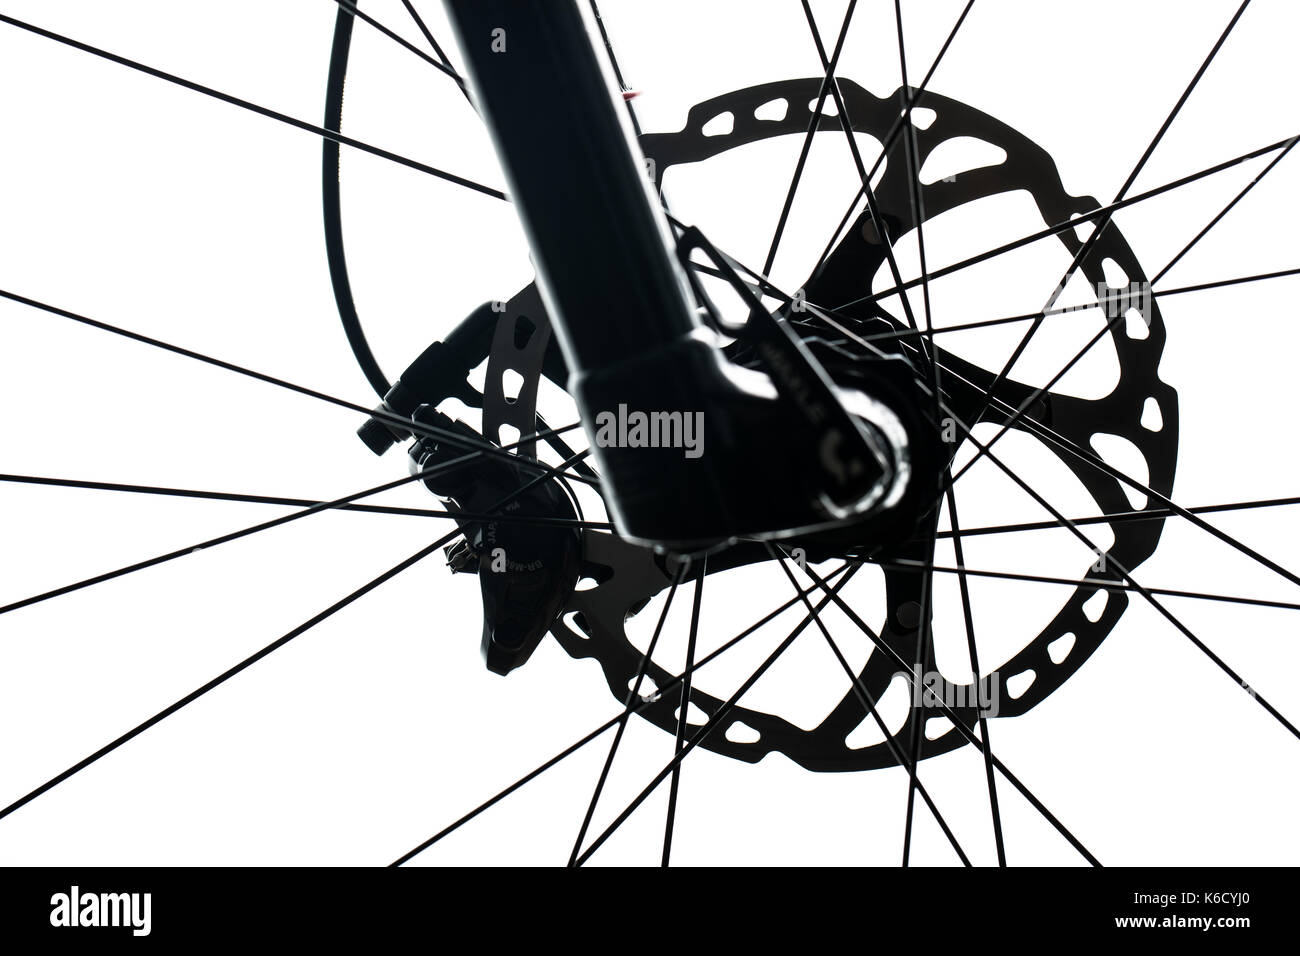 Modern MTB race mountain bike isolated on white in a studio - Stock Image